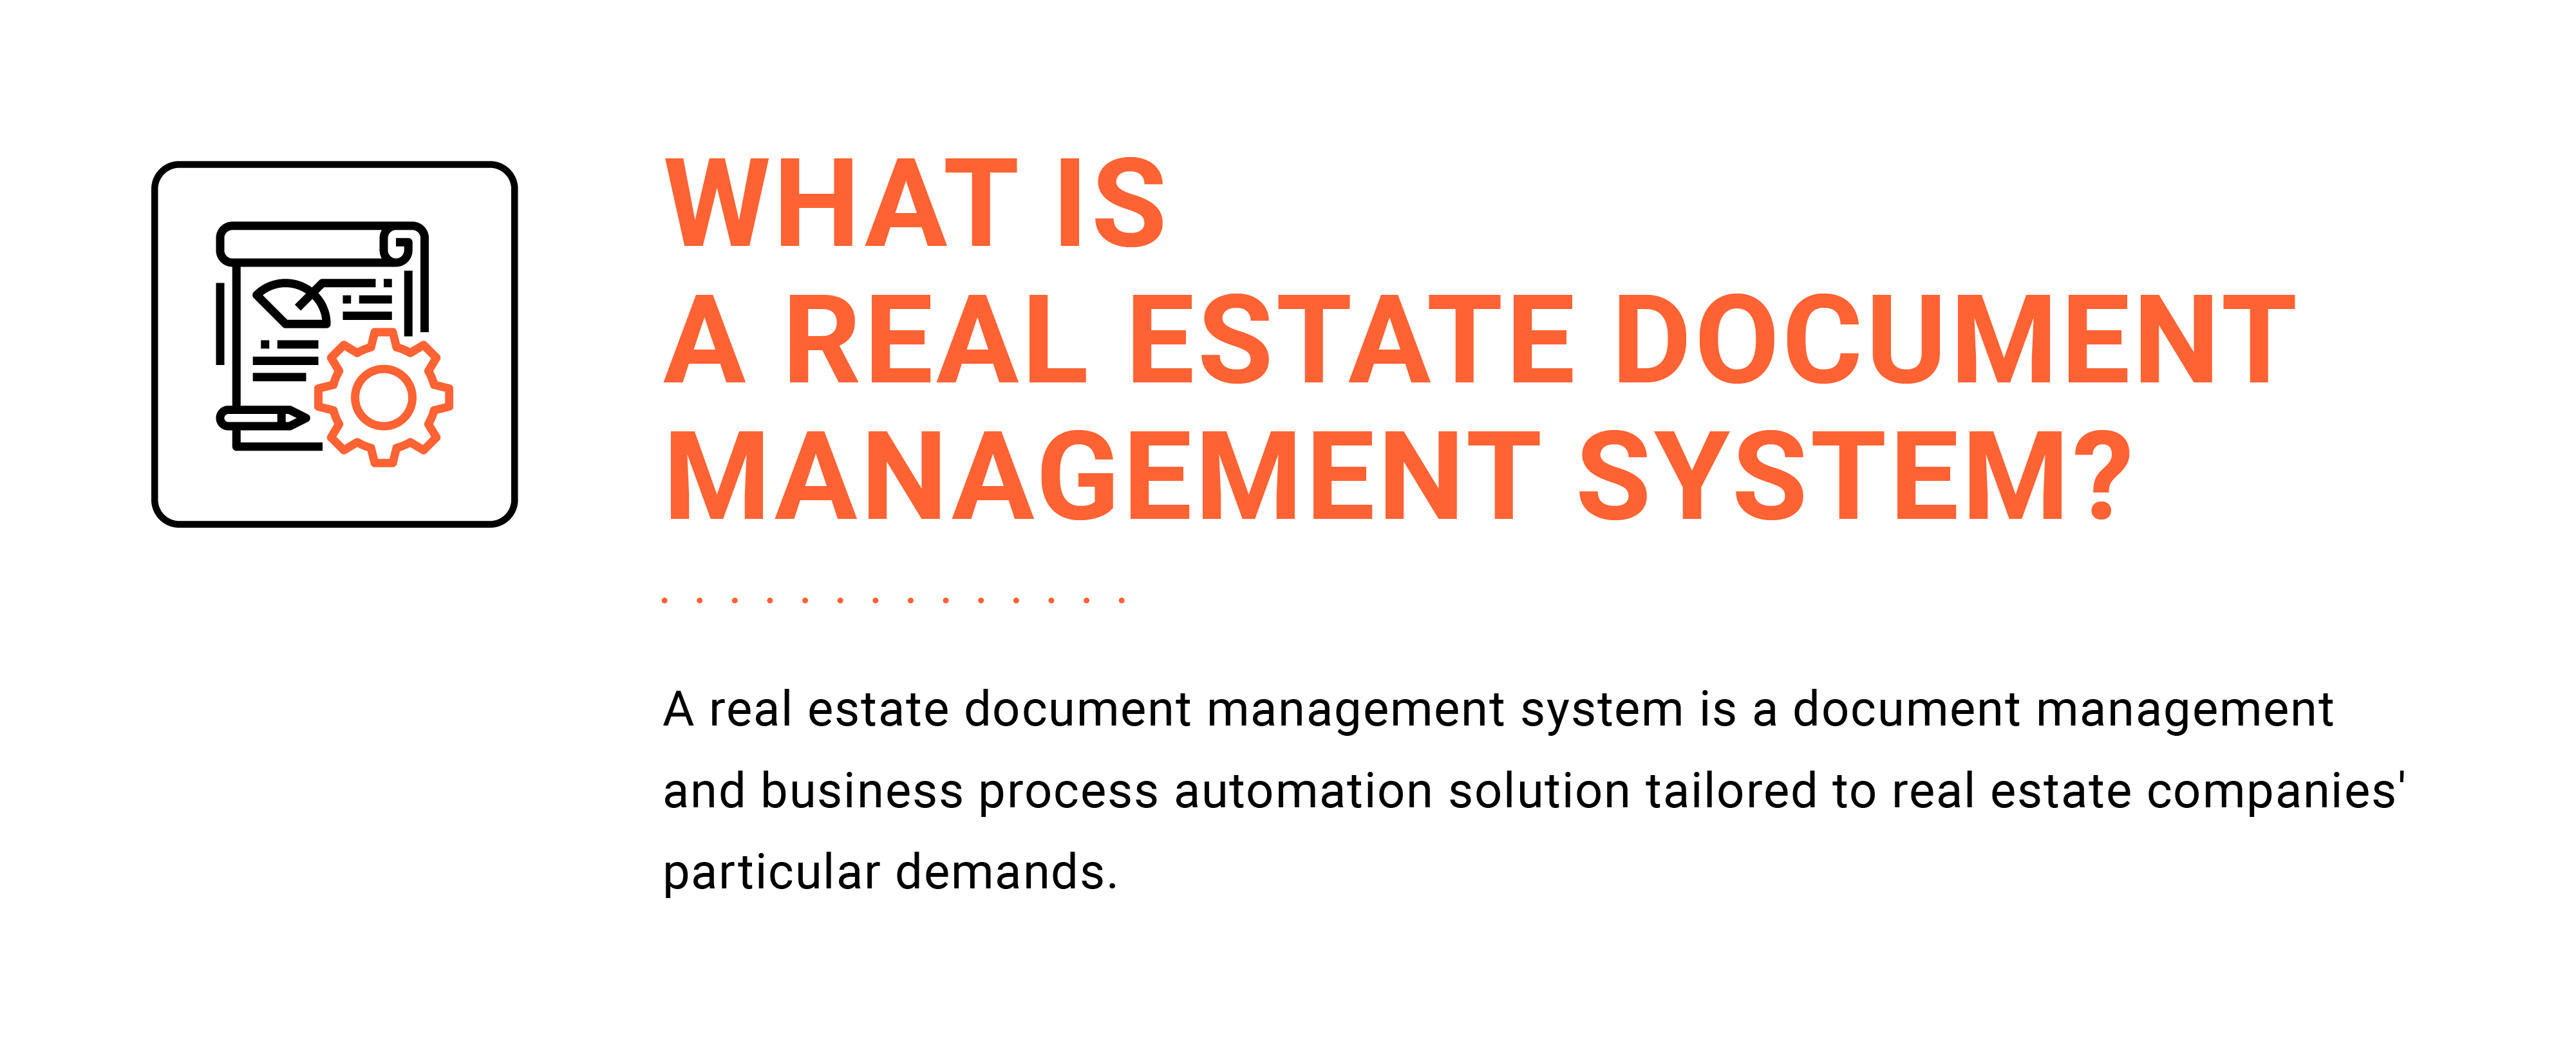 Definition of a document management system for real estate